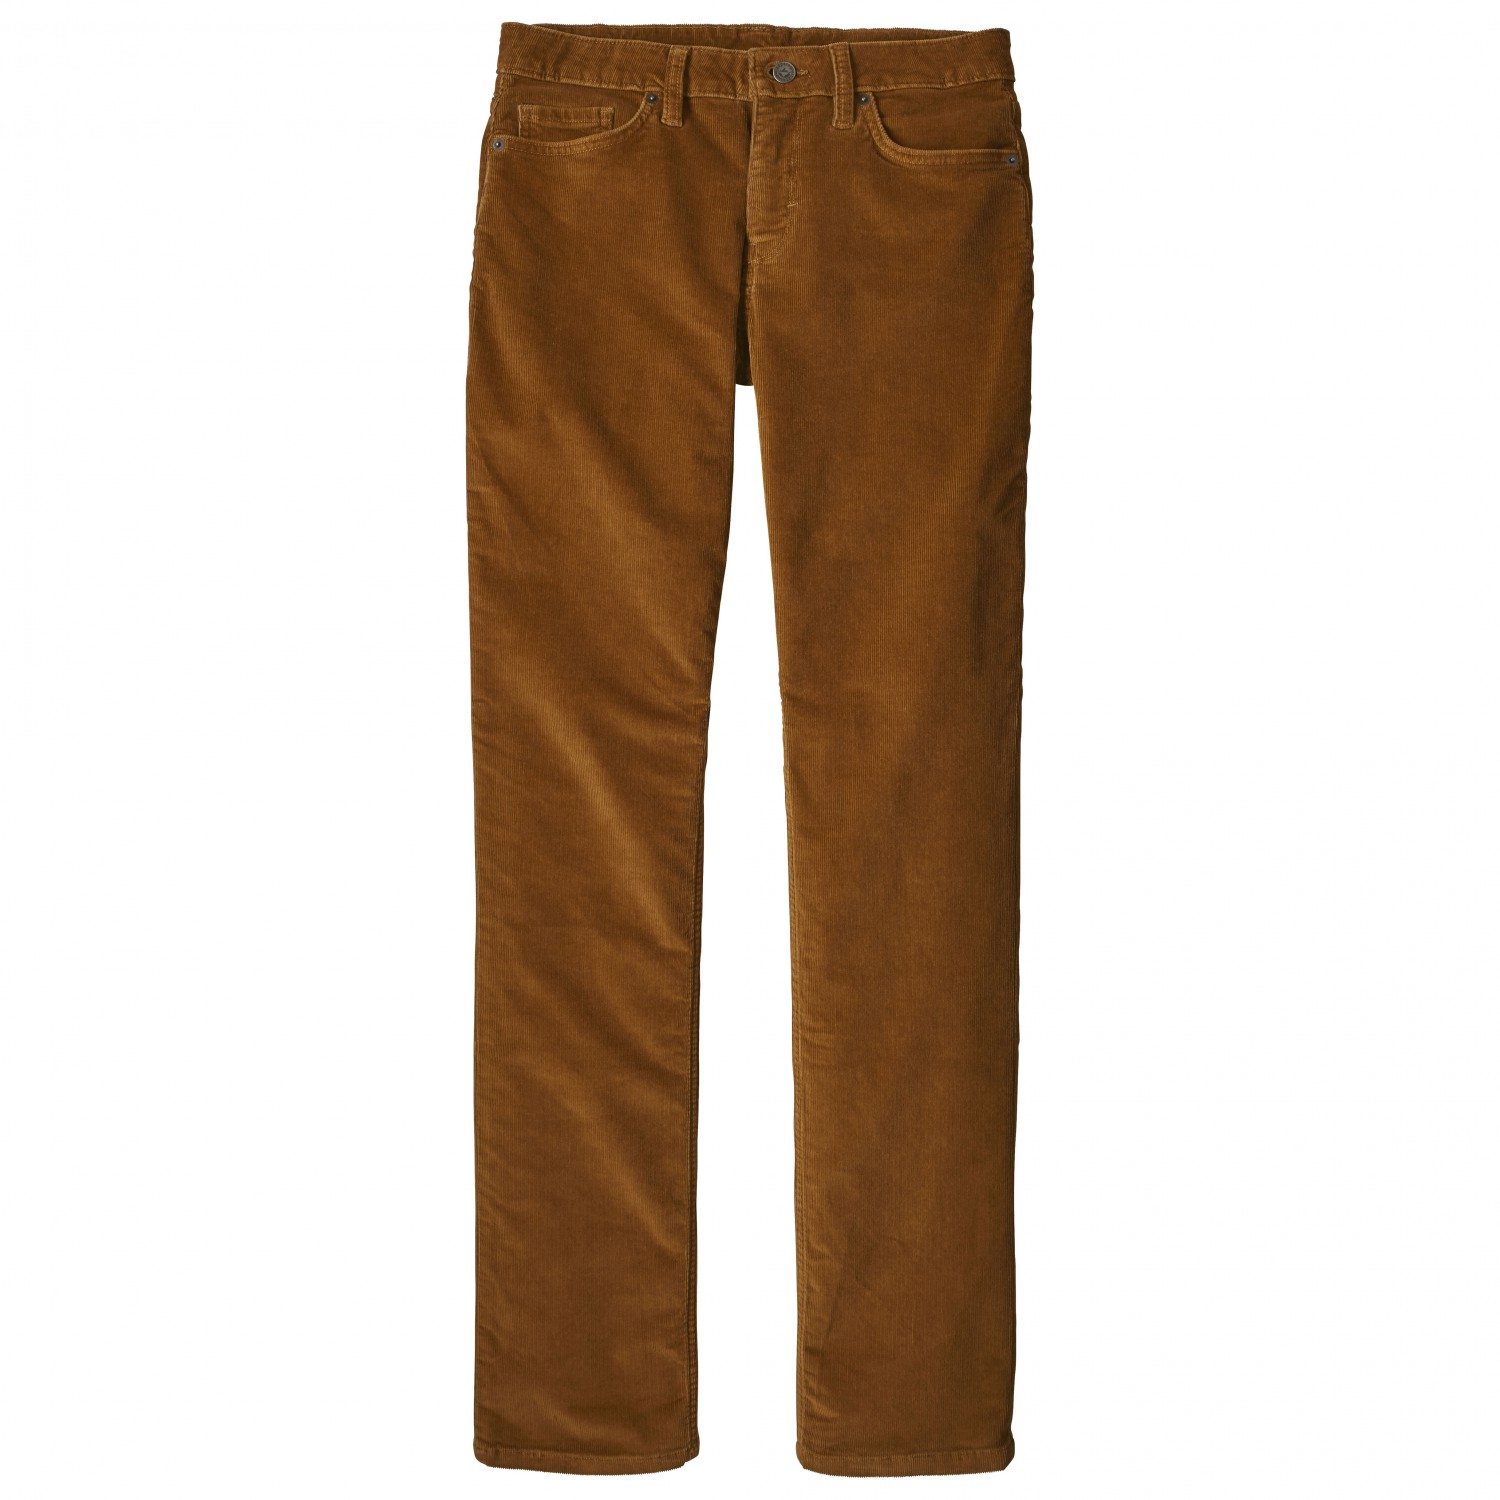 00e1856e Patagonia Corduroy Pants - Jeans Women's | Buy online | Alpinetrek.co.uk